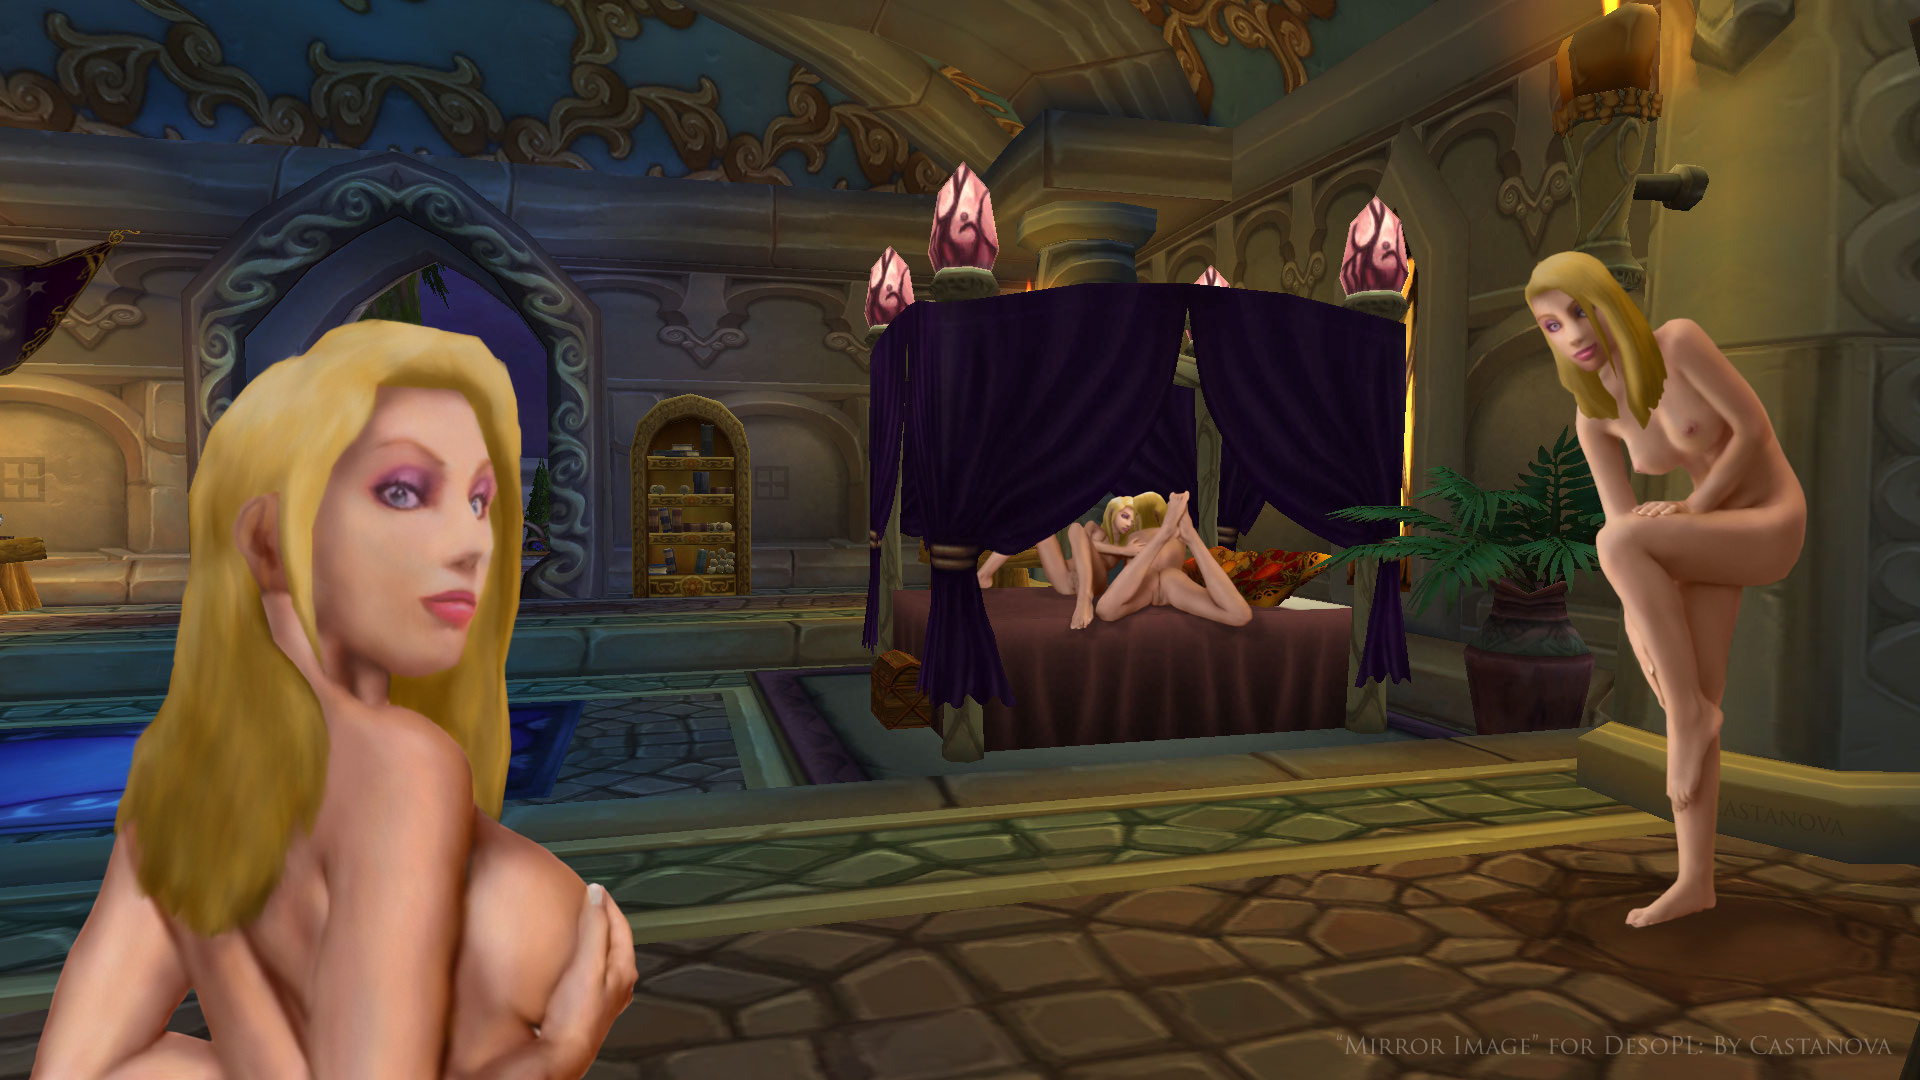 World of warcraft races nude pics sexy tube